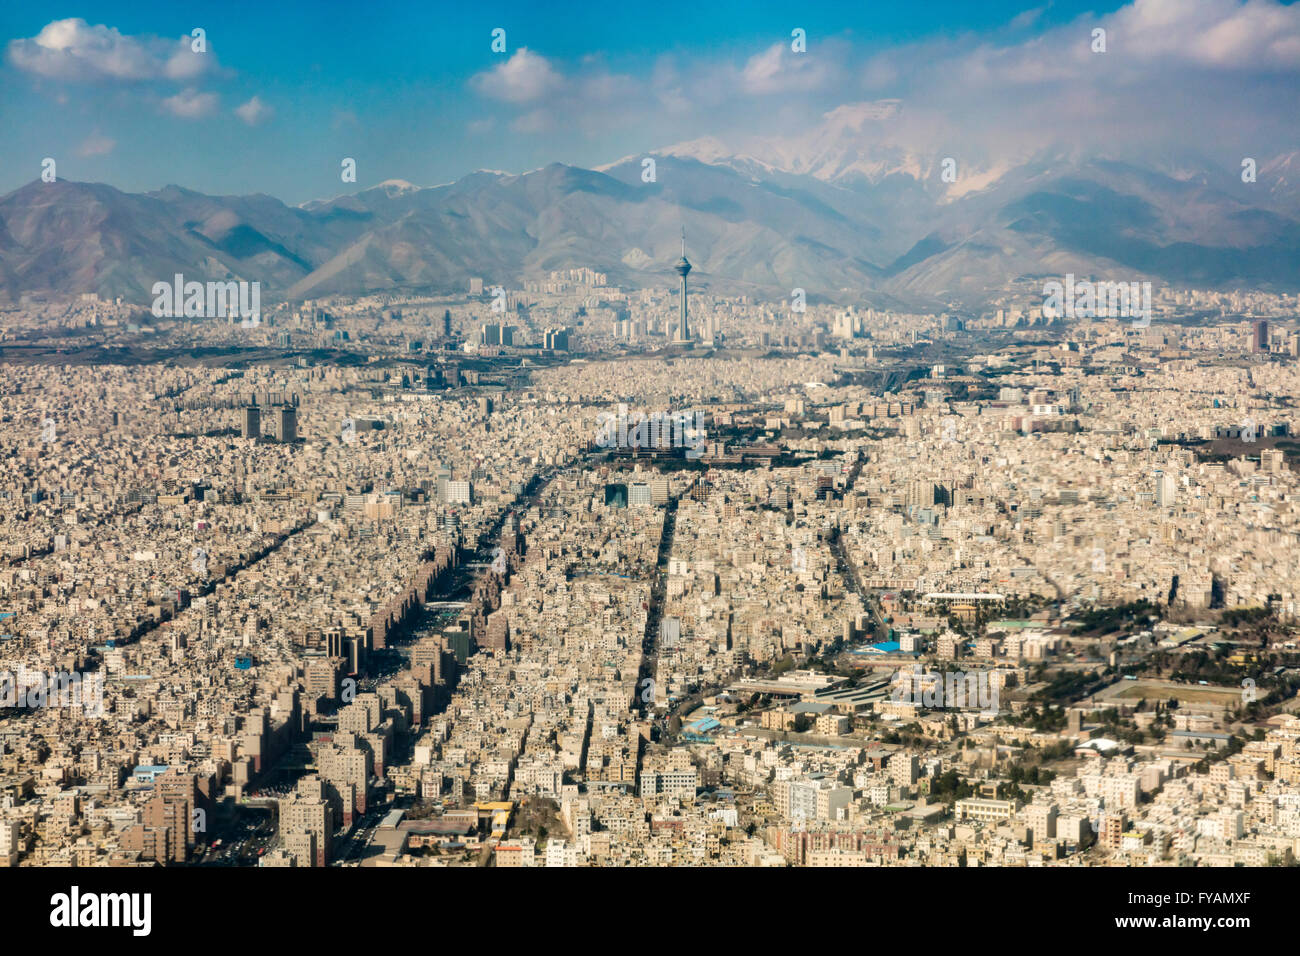 Aerial view of concrete sprawl of Tehran Iran with the snowcapped Alborz Mountains in background - Stock Image